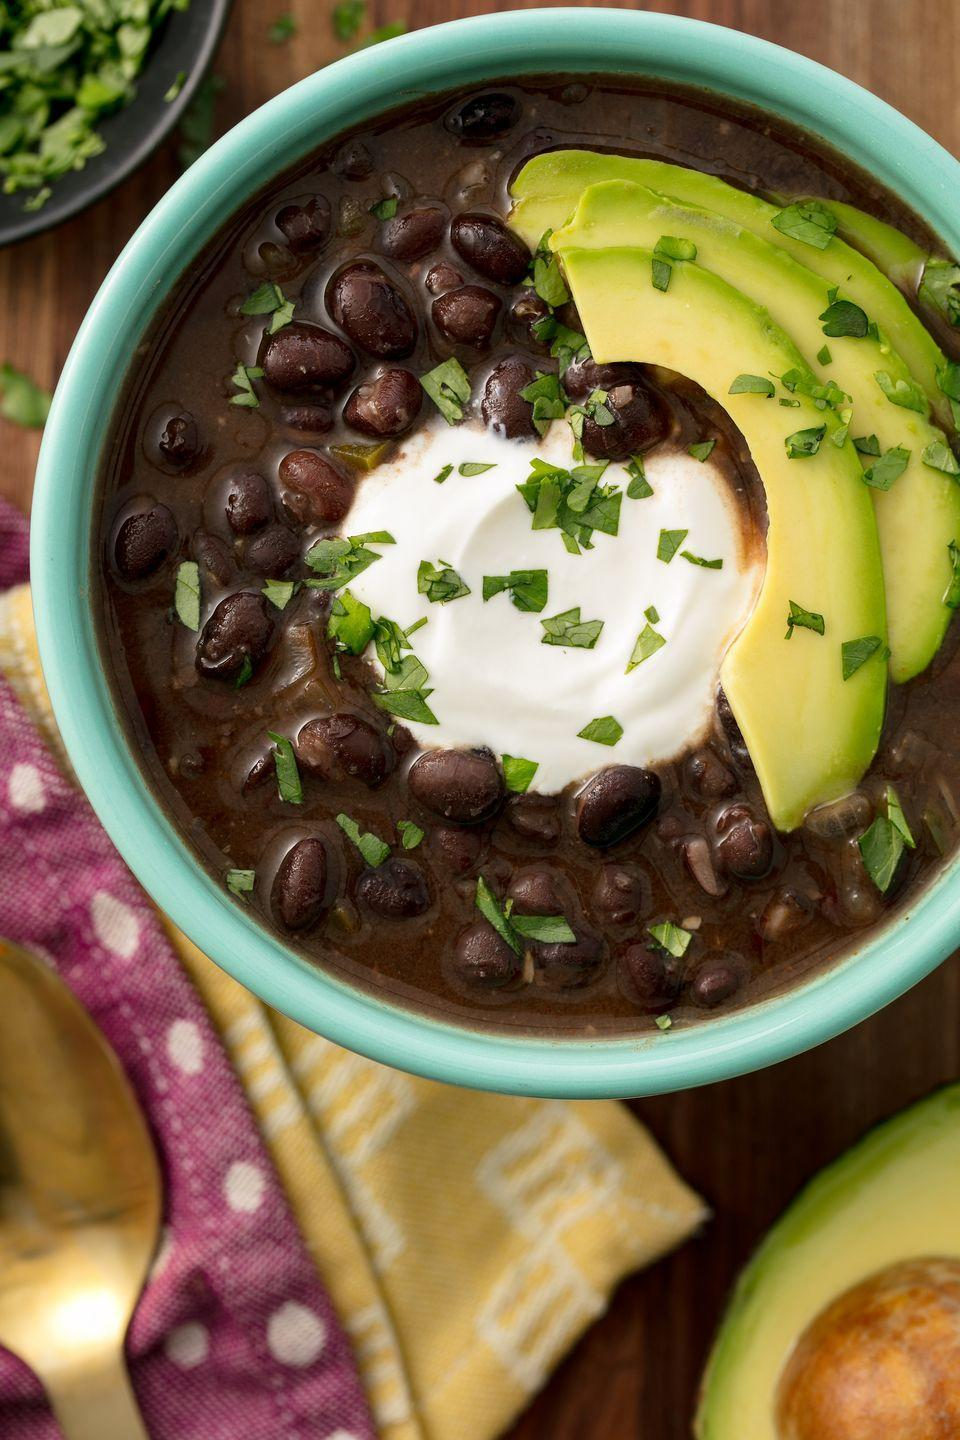 "<p>A warm and spicy black bean soup.</p><p>Get the recipe from <a href=""https://www.delish.com/cooking/recipe-ideas/recipes/a55504/easy-black-bean-soup-recipe/"" rel=""nofollow noopener"" target=""_blank"" data-ylk=""slk:Delish"" class=""link rapid-noclick-resp"">Delish</a>.</p>"